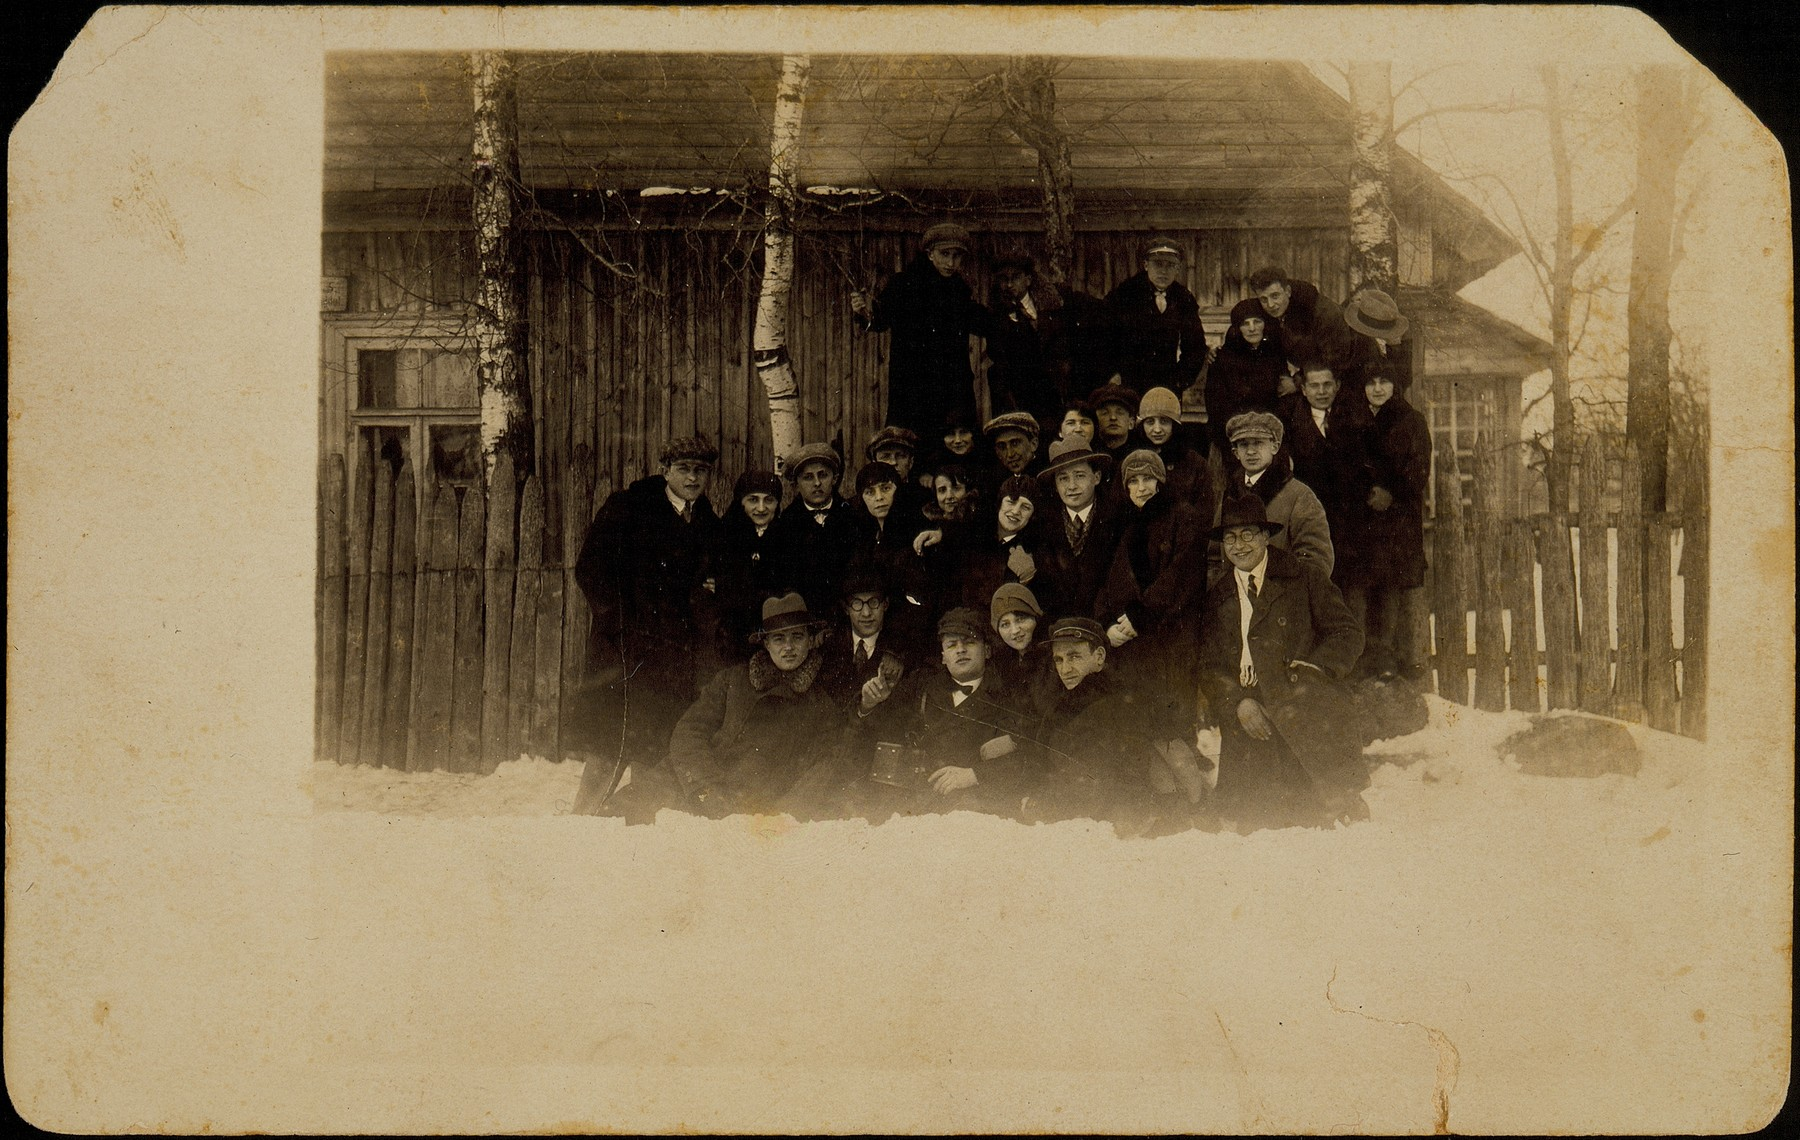 Several Jewish families who are celebrating the holiday of Hanukkah together, pose outside a wooden house in Eisiskes.  Pictured are members of the Sonenson, Kabacznik and Kaganowicz families with Shaul Dubrowicz.